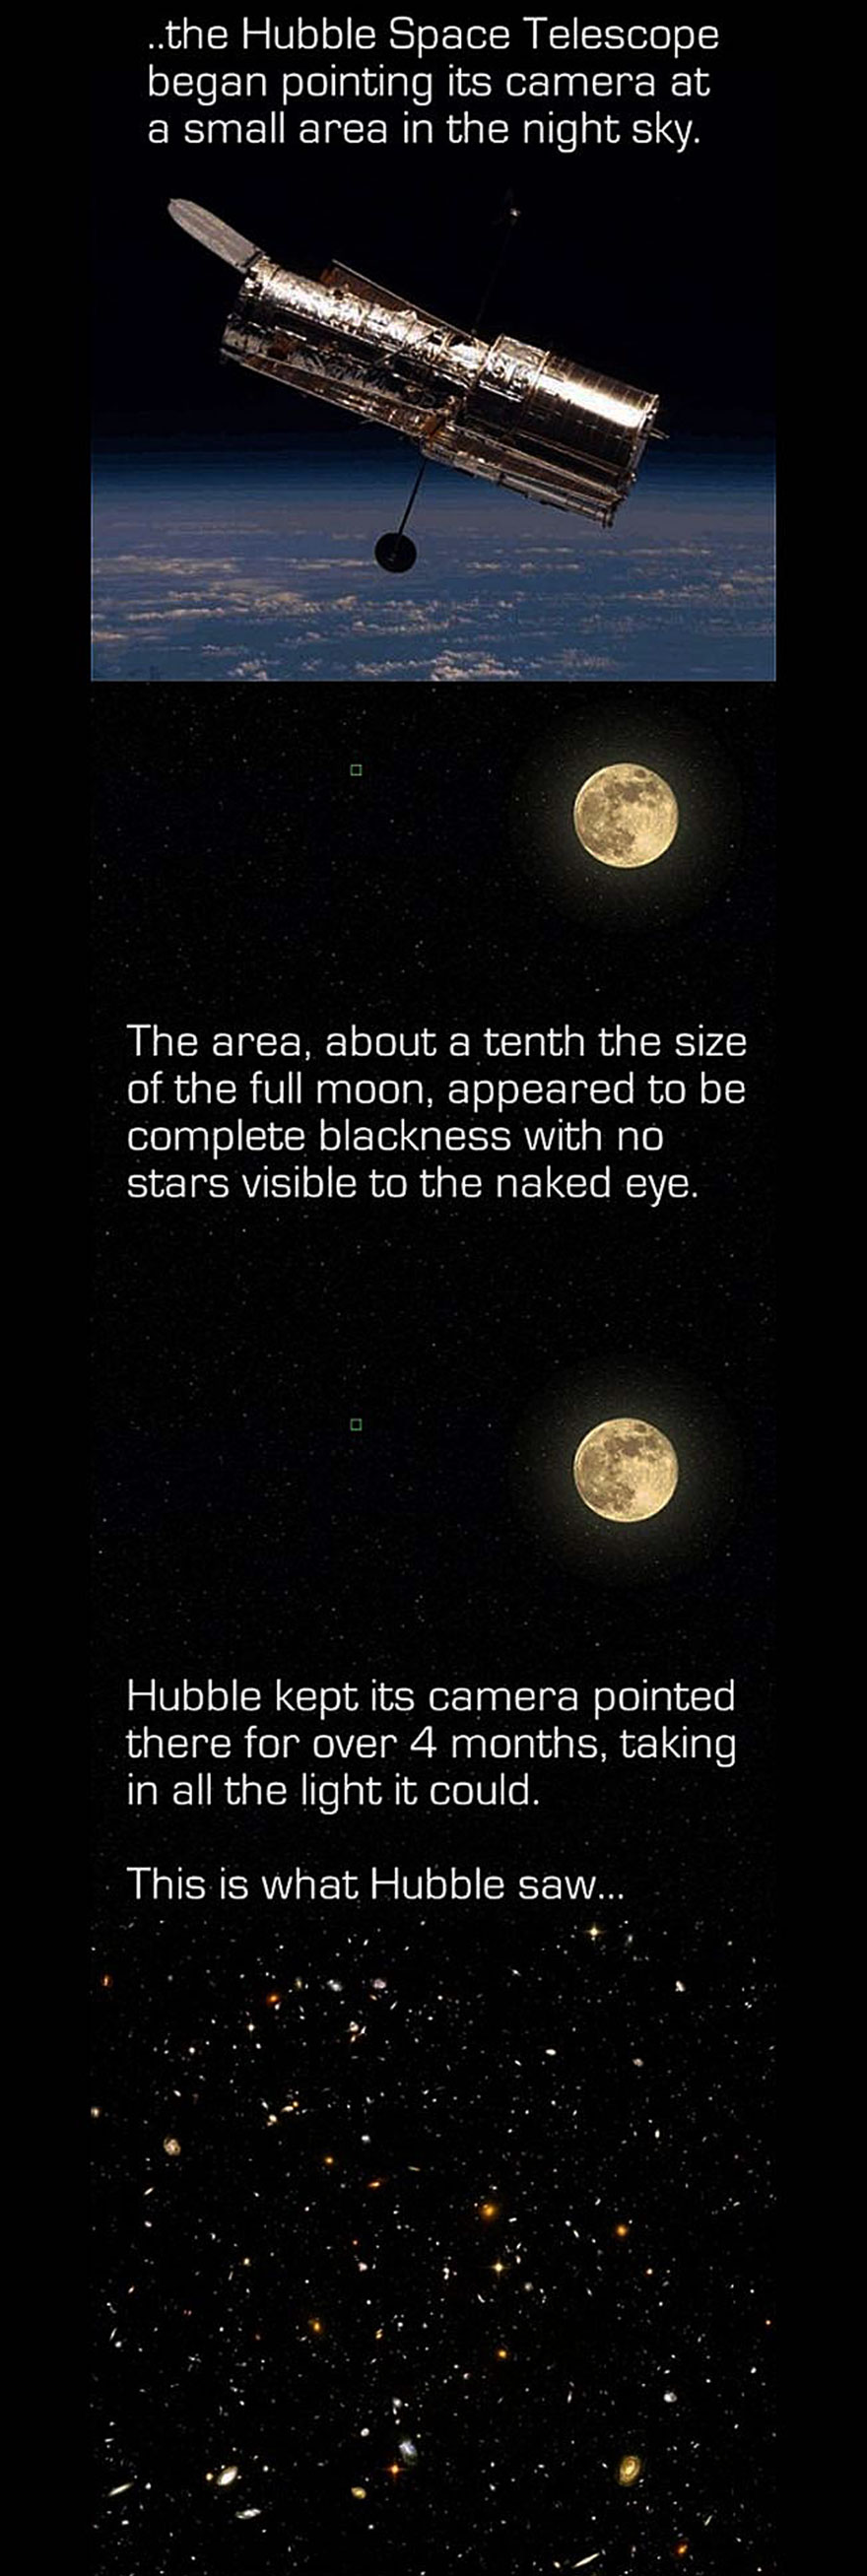 Space-Telescope-camera-sky-earth-moon